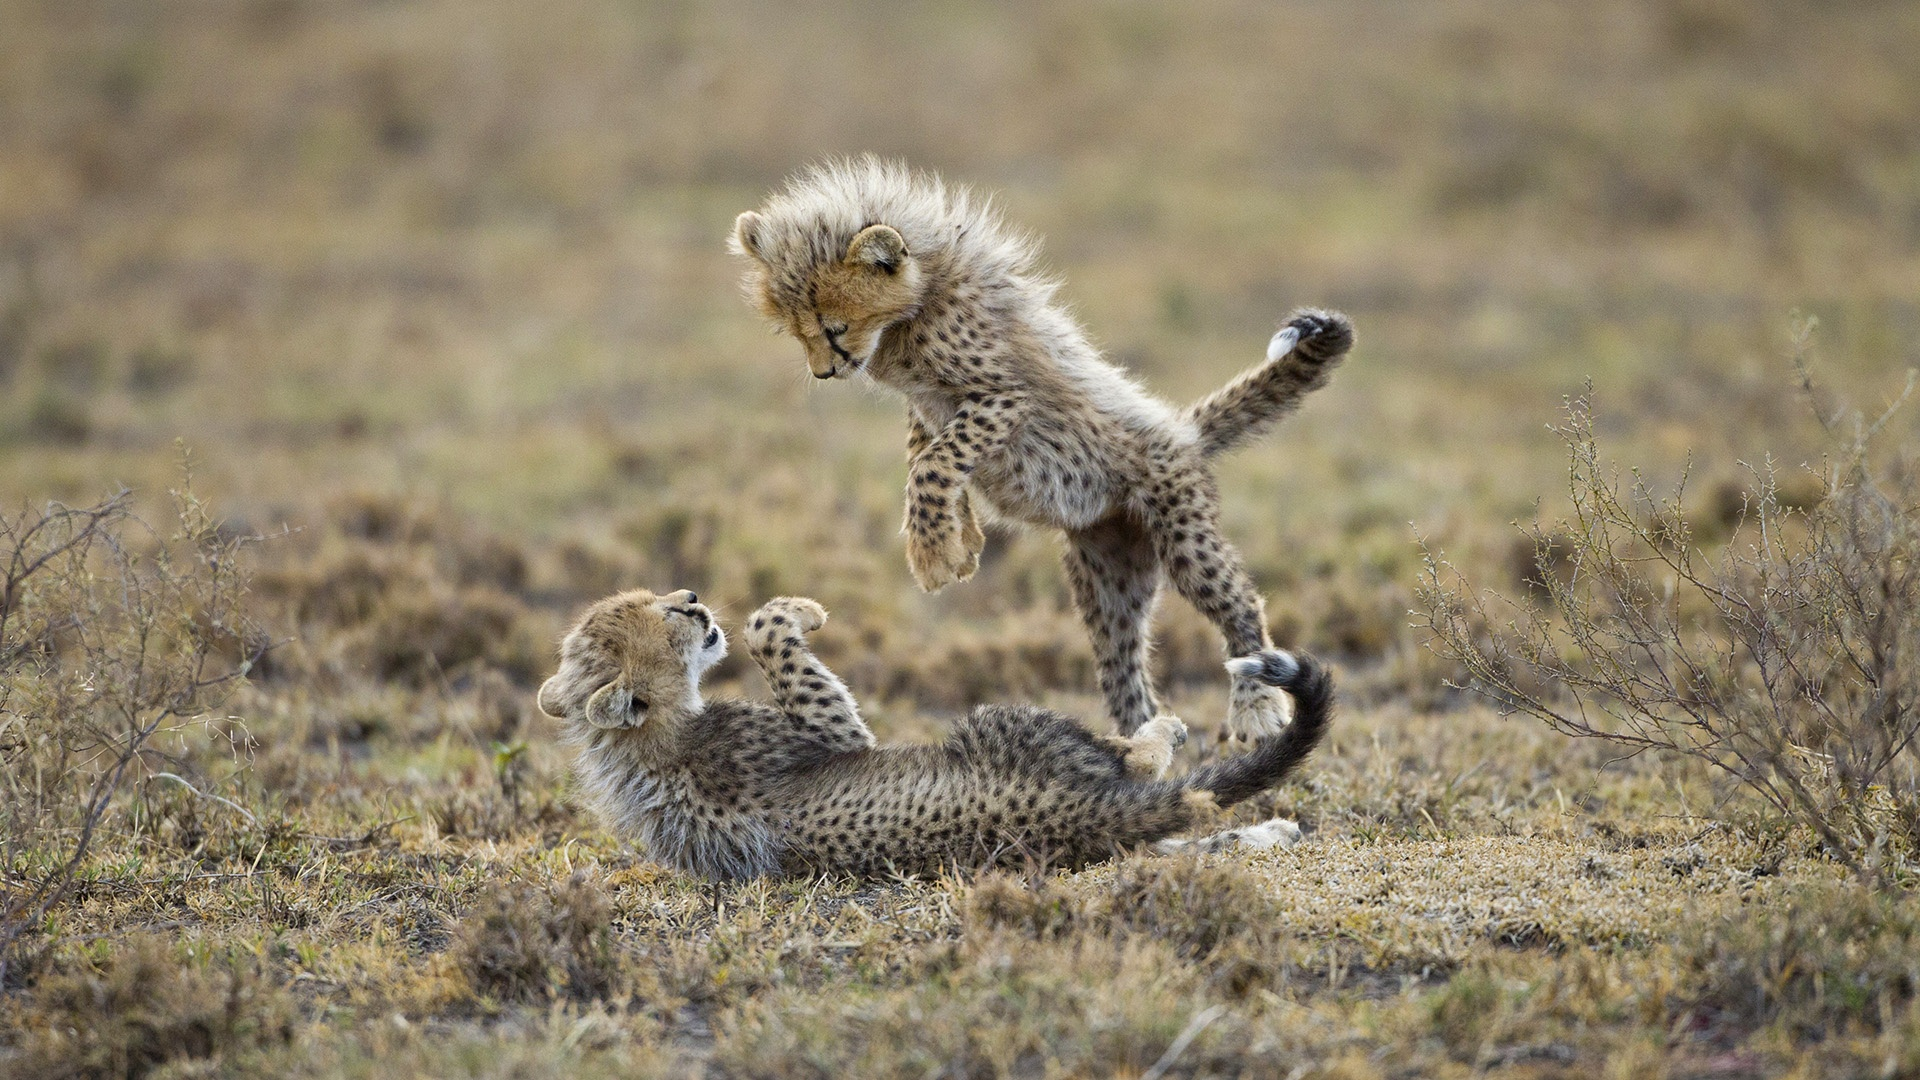 Cheetah cubs playing 1920 x 1080 download close